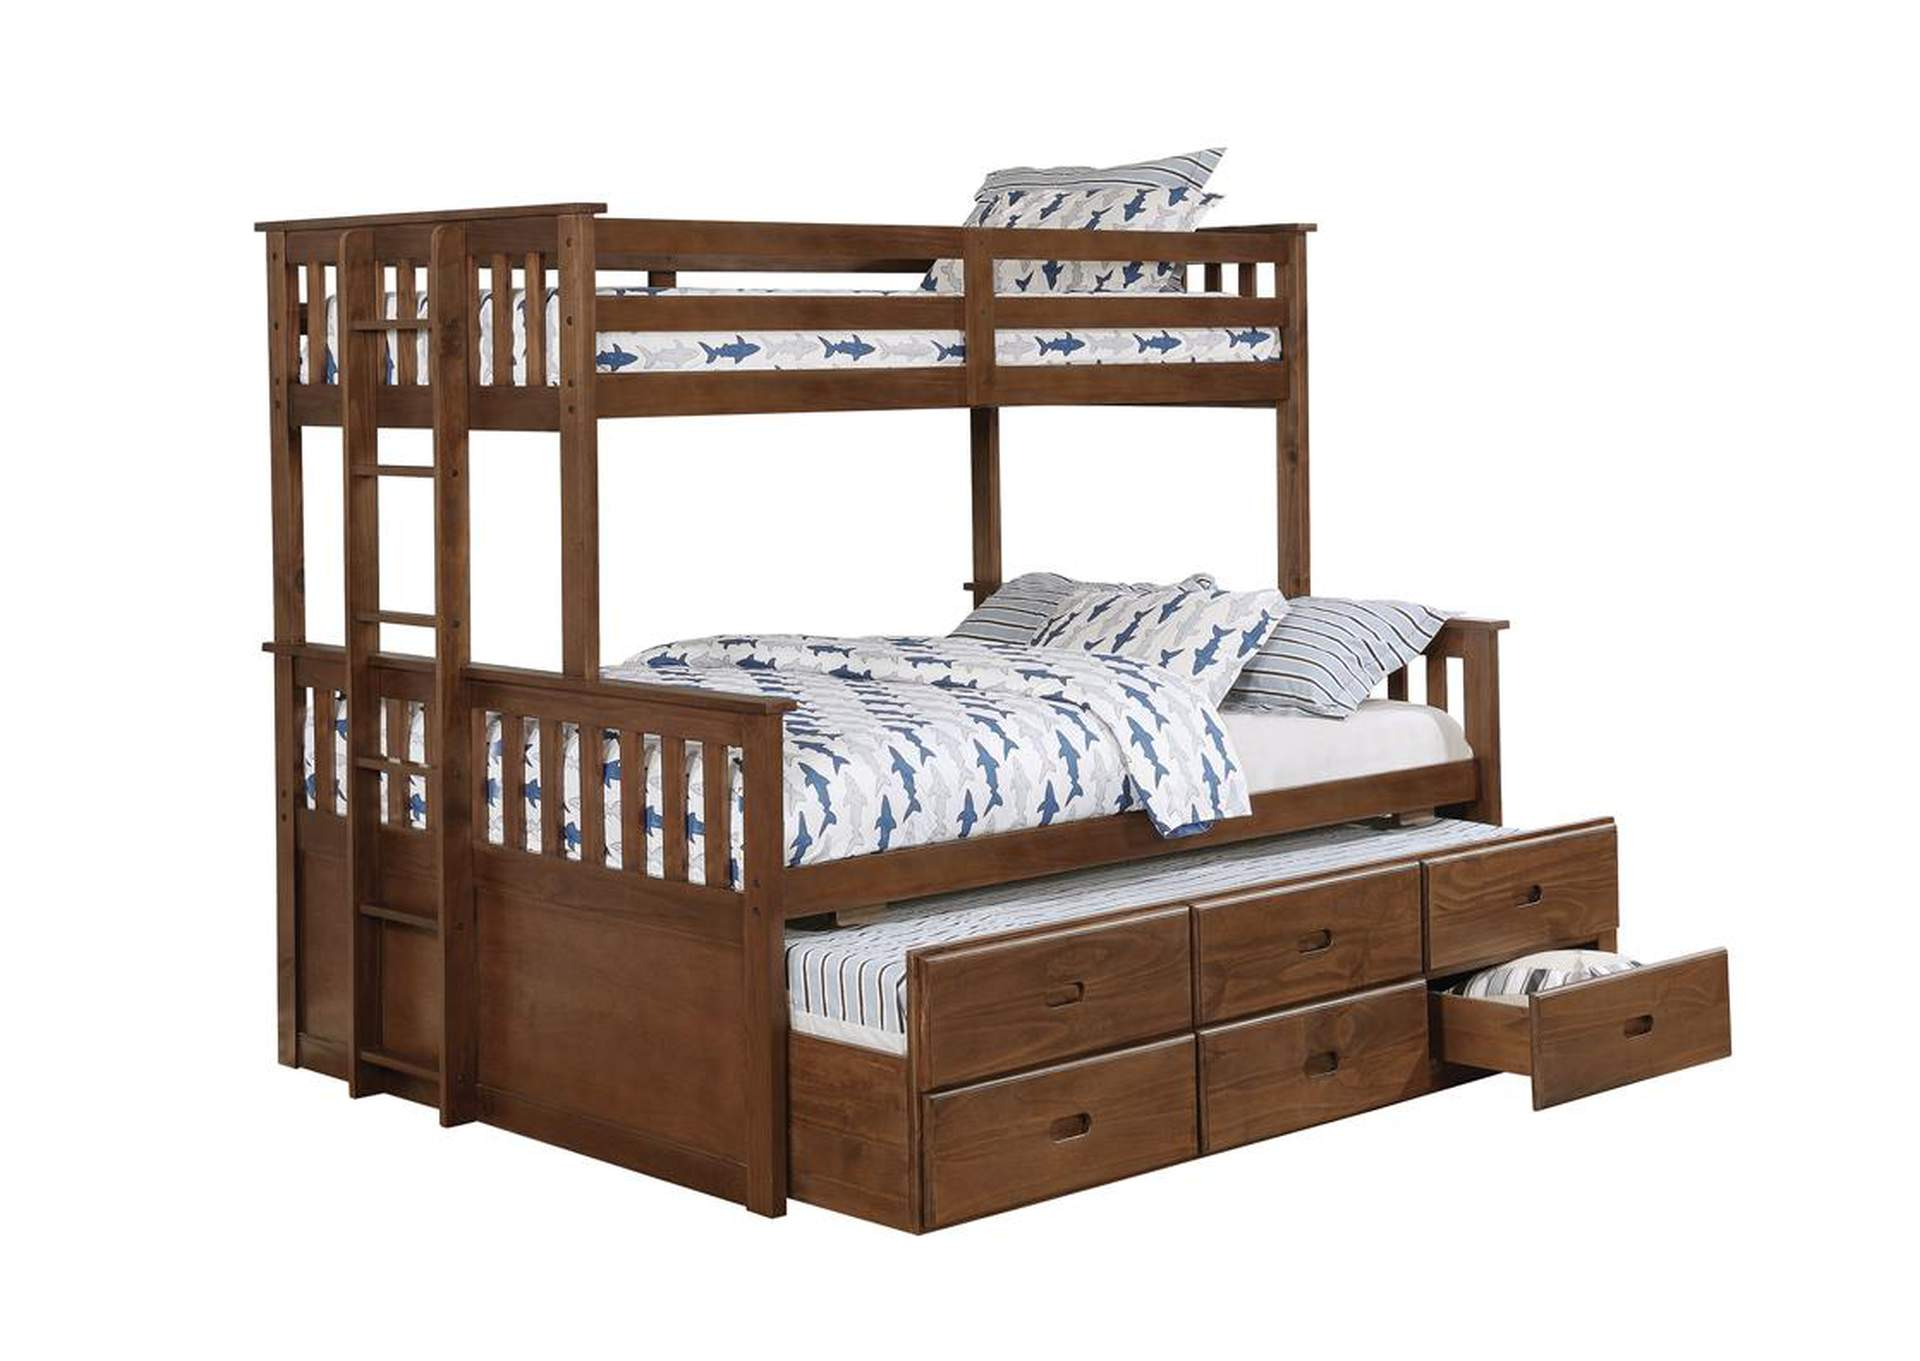 Quincy Atkin Weathered Walnut Twin XL-over-Queen Bunk Bed,Coaster Furniture